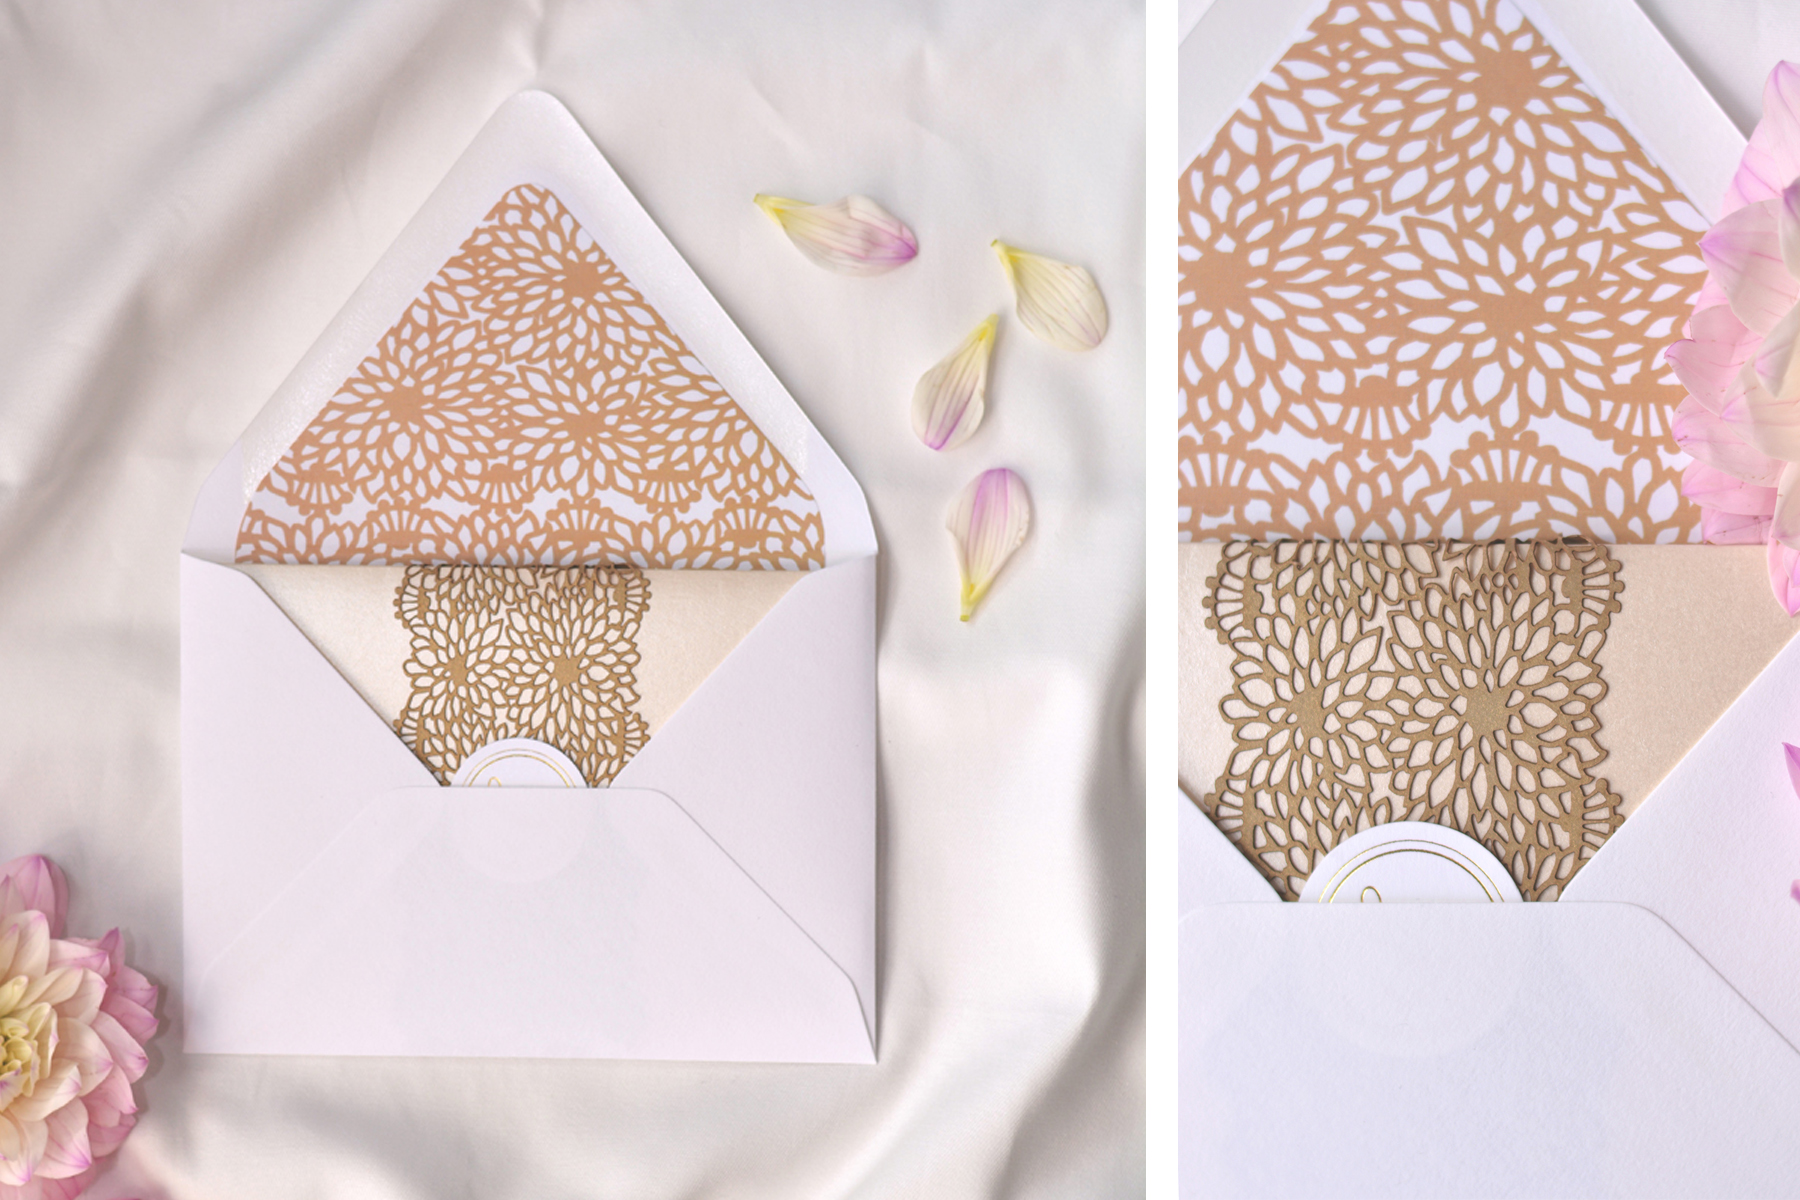 The envelope featured a digitally printed liner to match the laser cut belly bands.